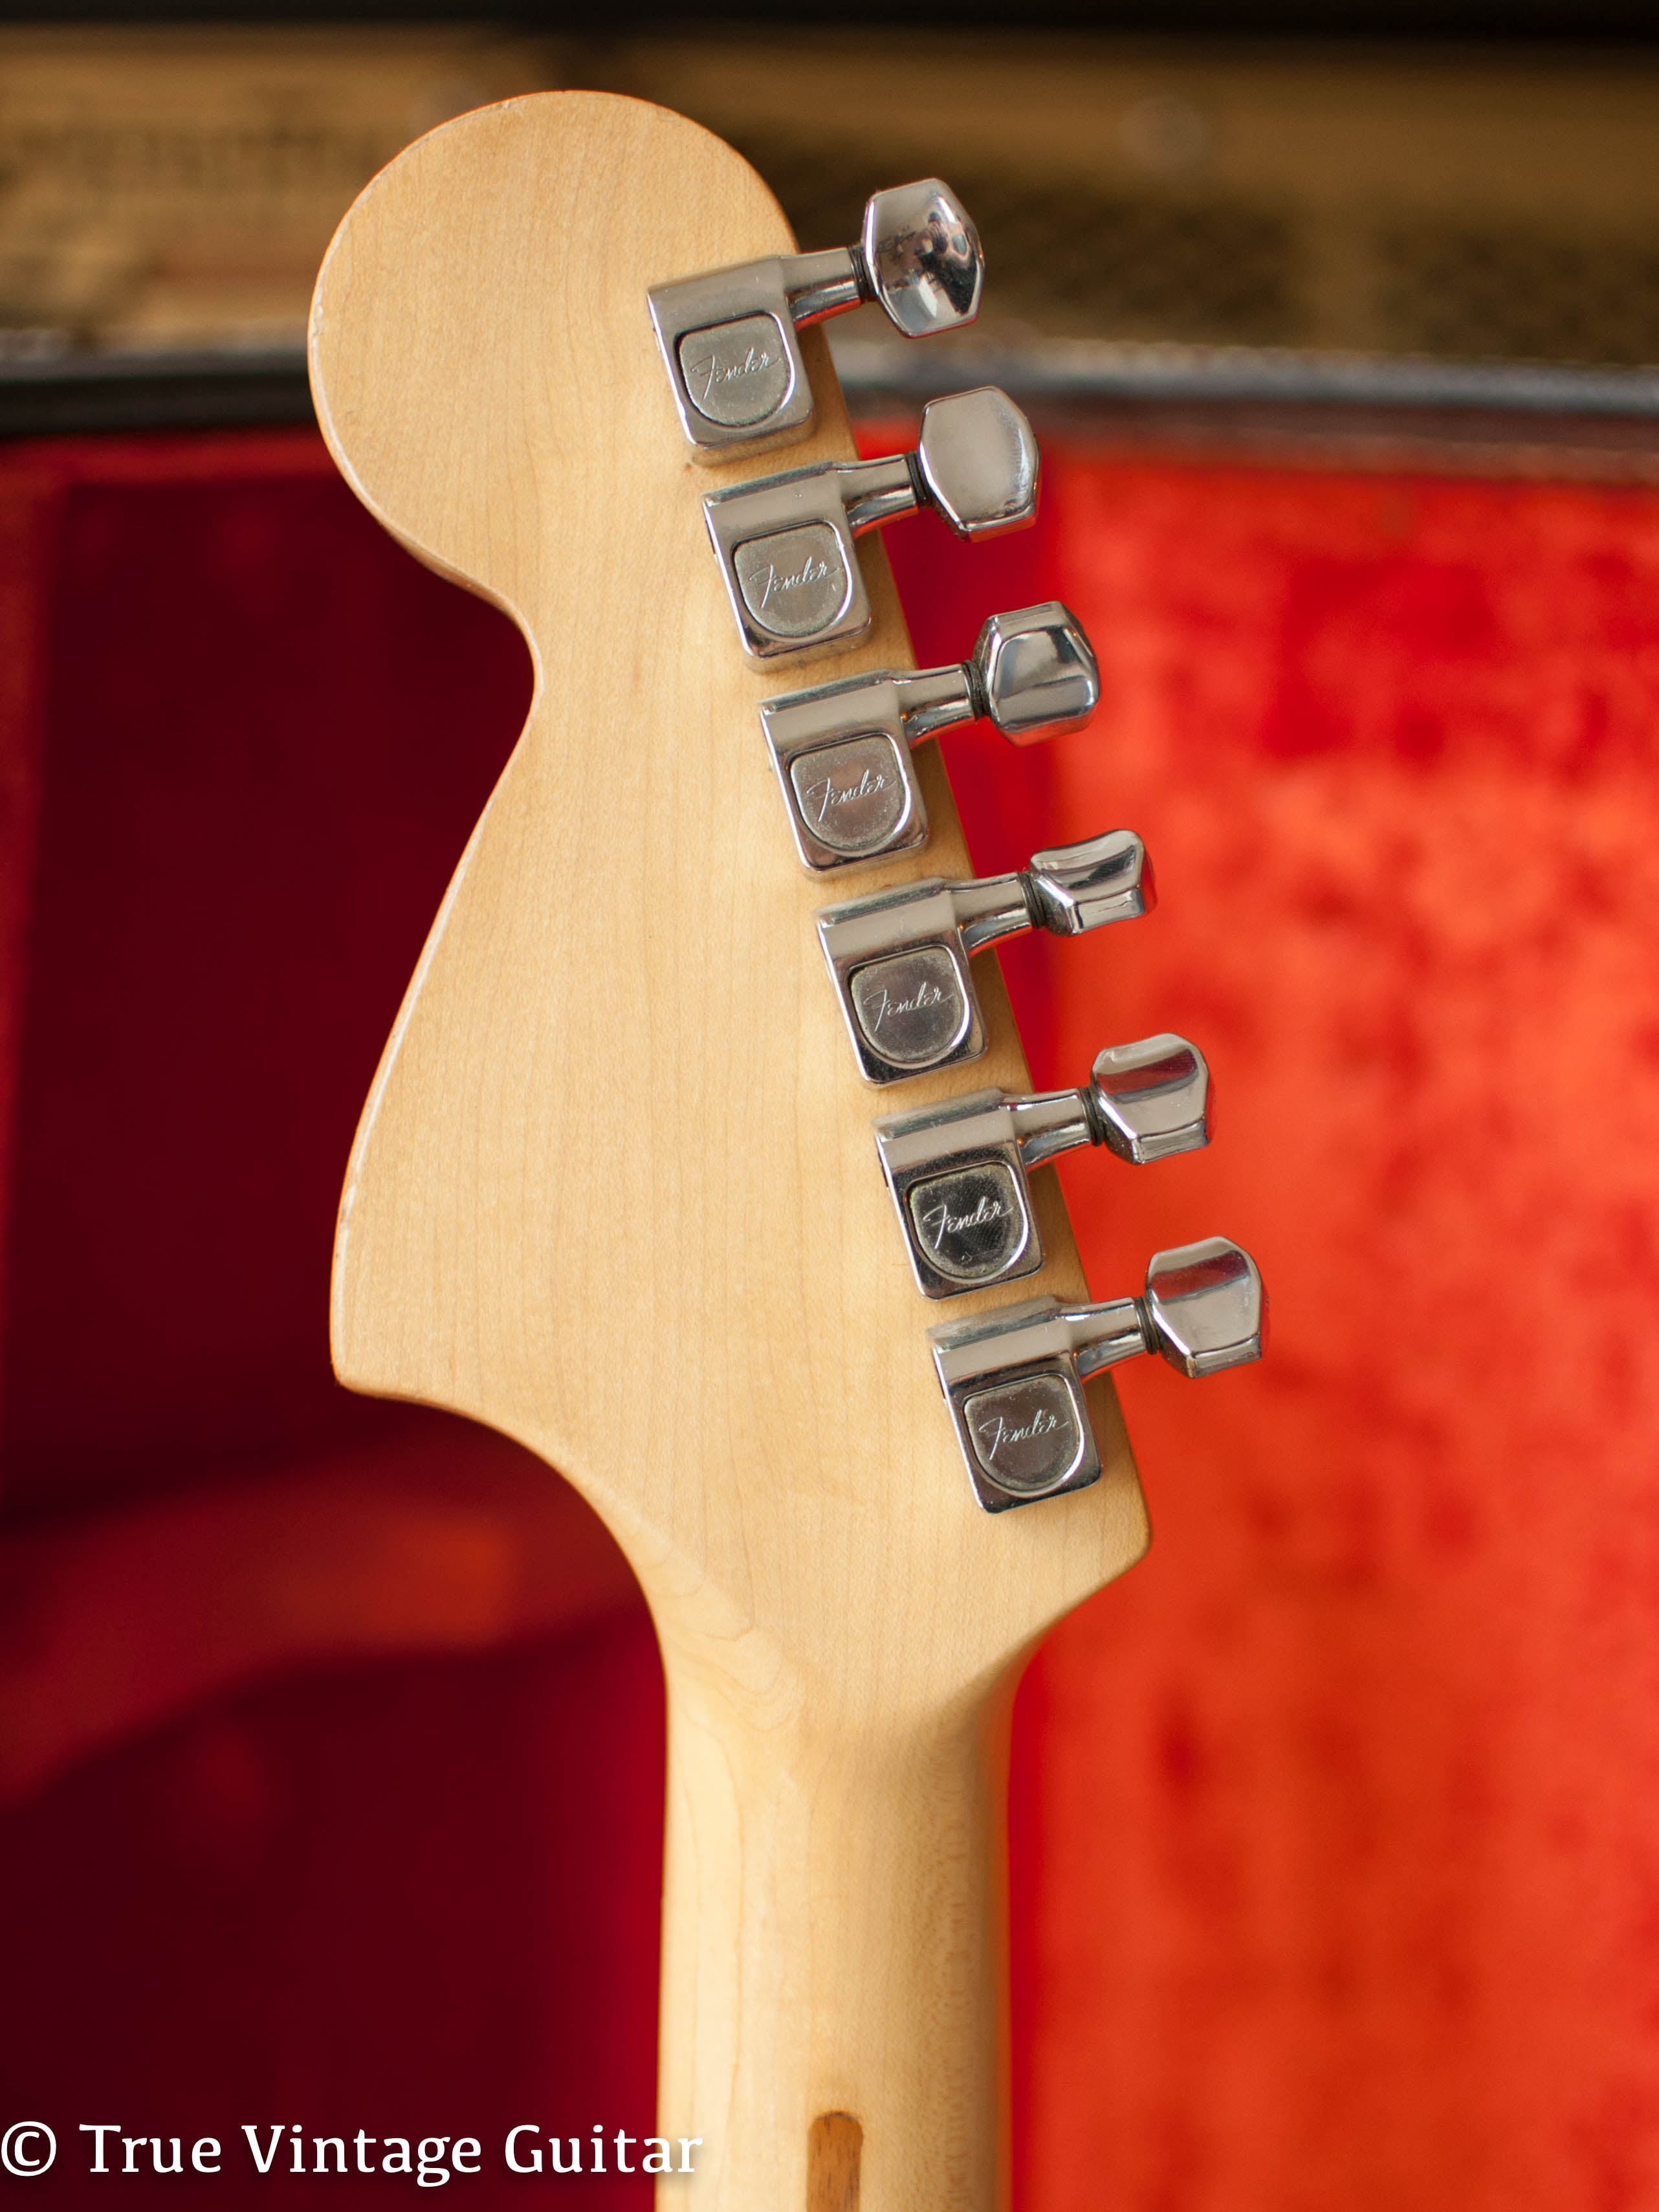 Sealed original tuners,1974 Fender Telecaster Deluxe